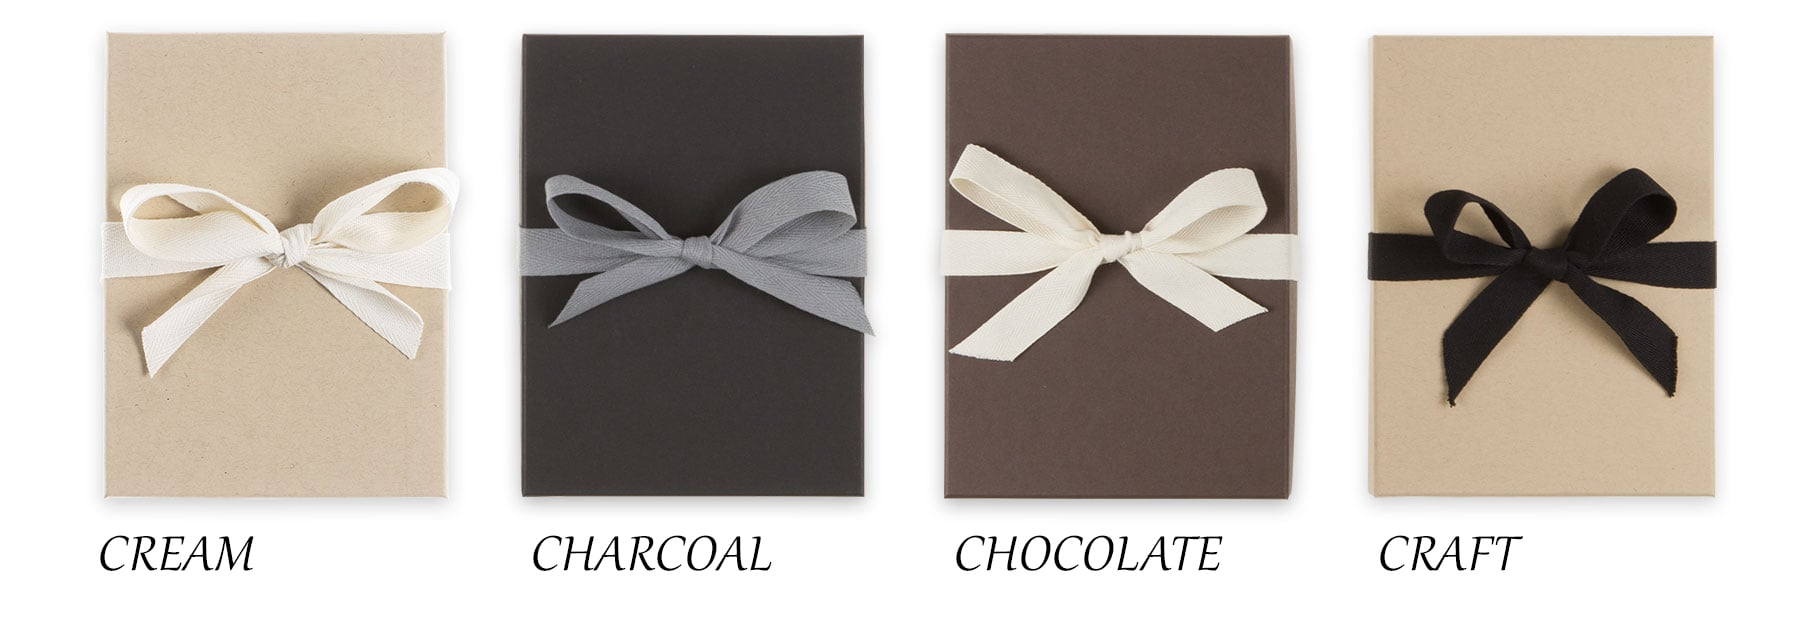 Colors of the boxes that elopement photography albums come in.